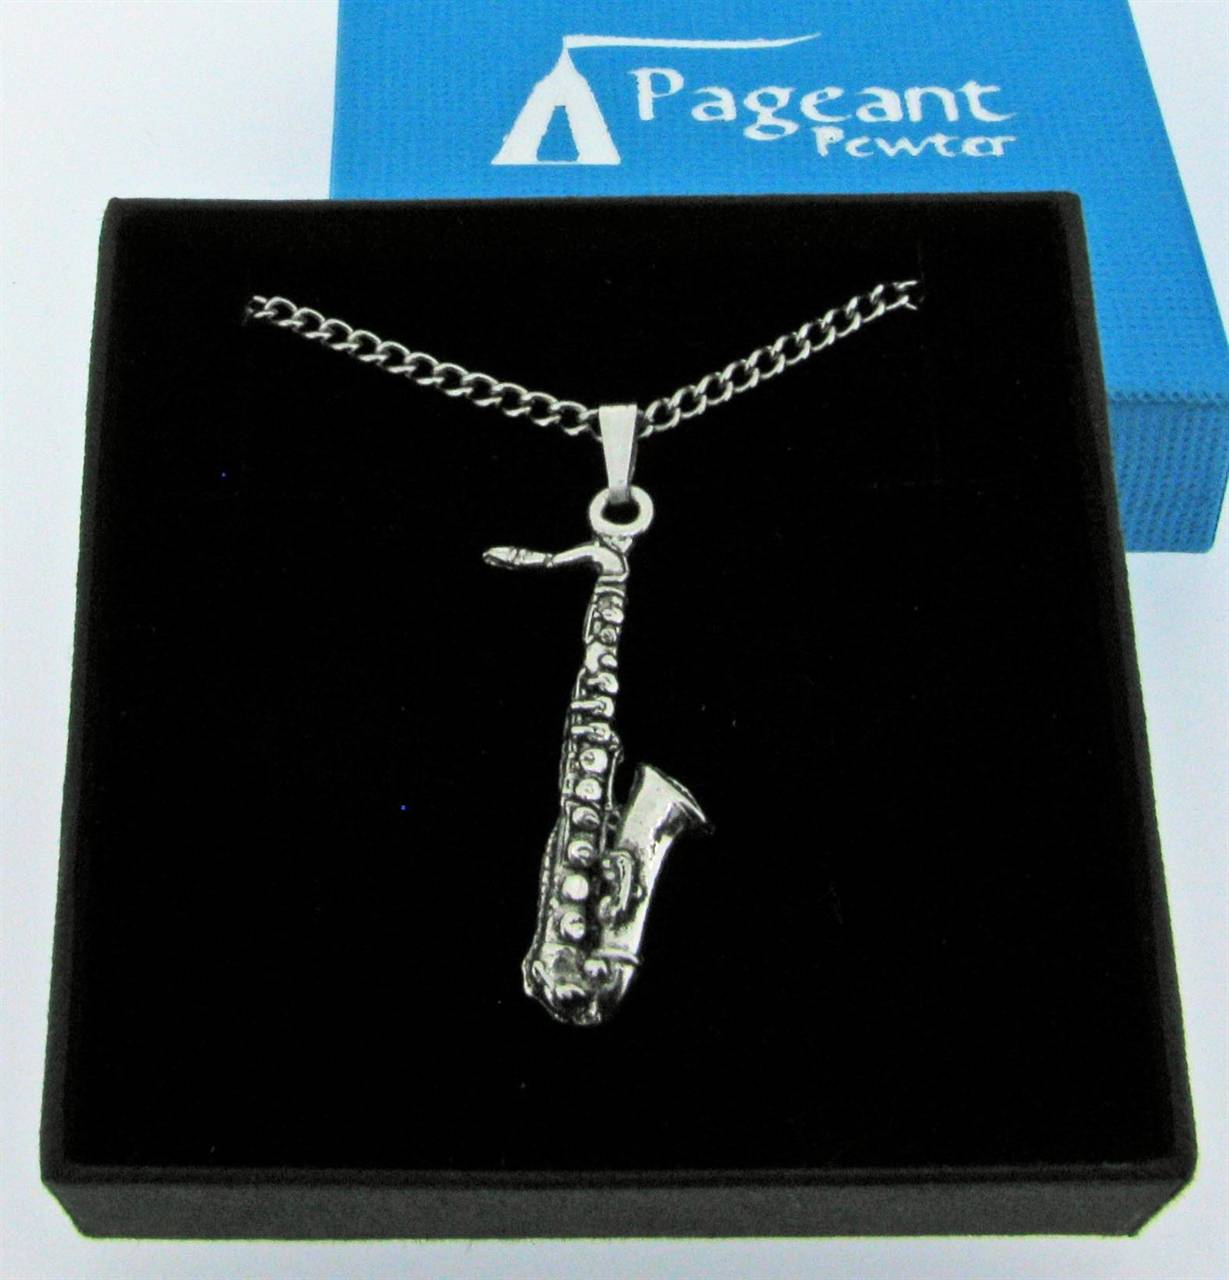 Saxophone Pendant - high quality pewter gifts from Pageant Pewter